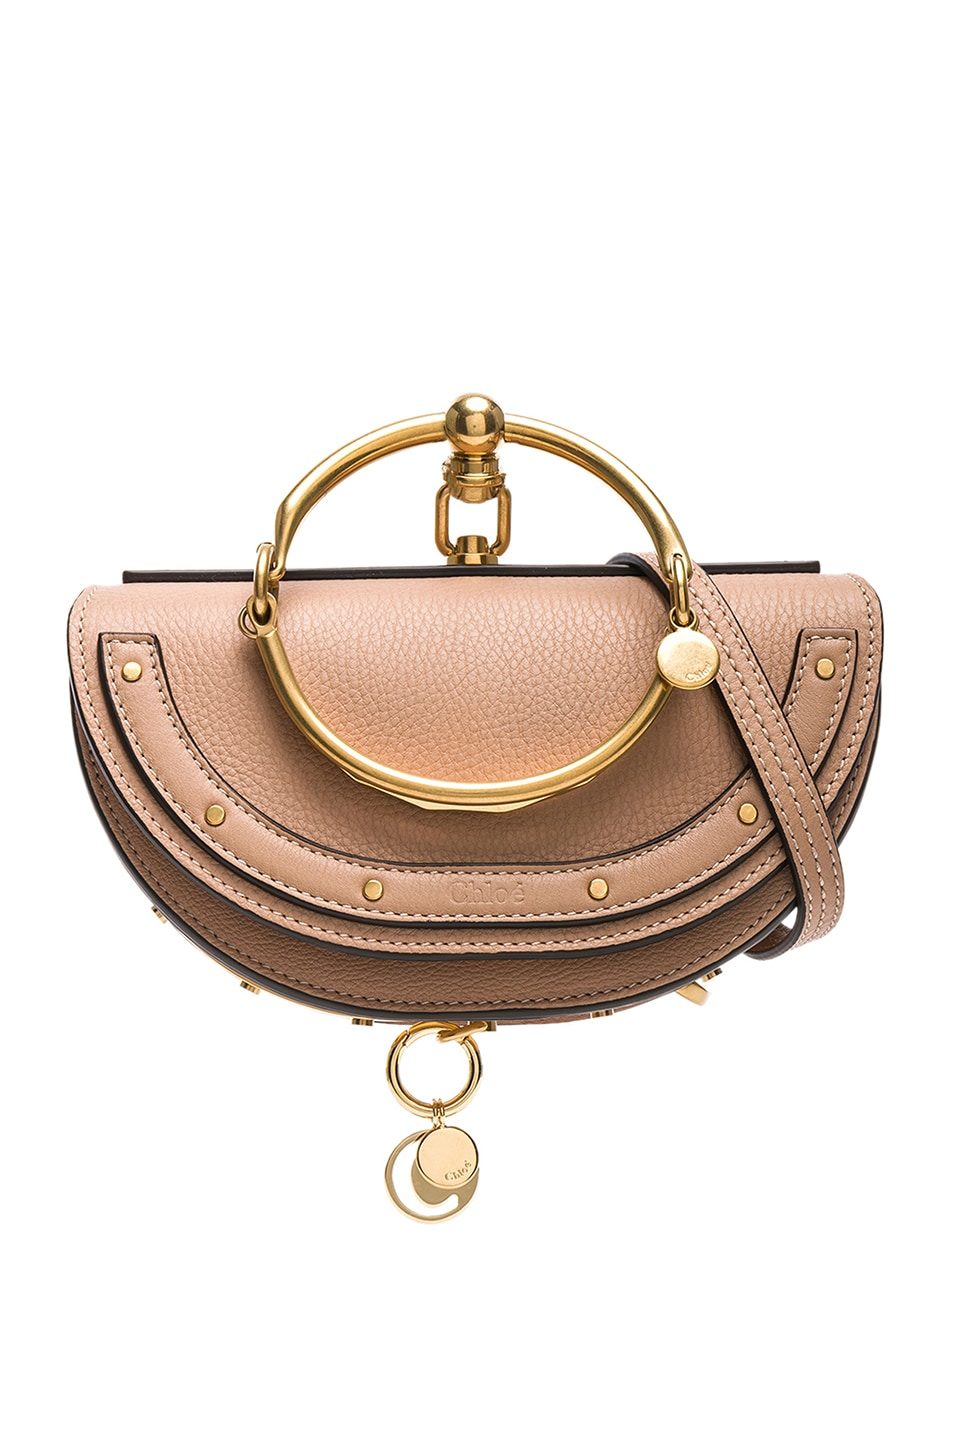 Image 1 of Chloe Small Nile Leather Minaudiere in Biscotti Beige